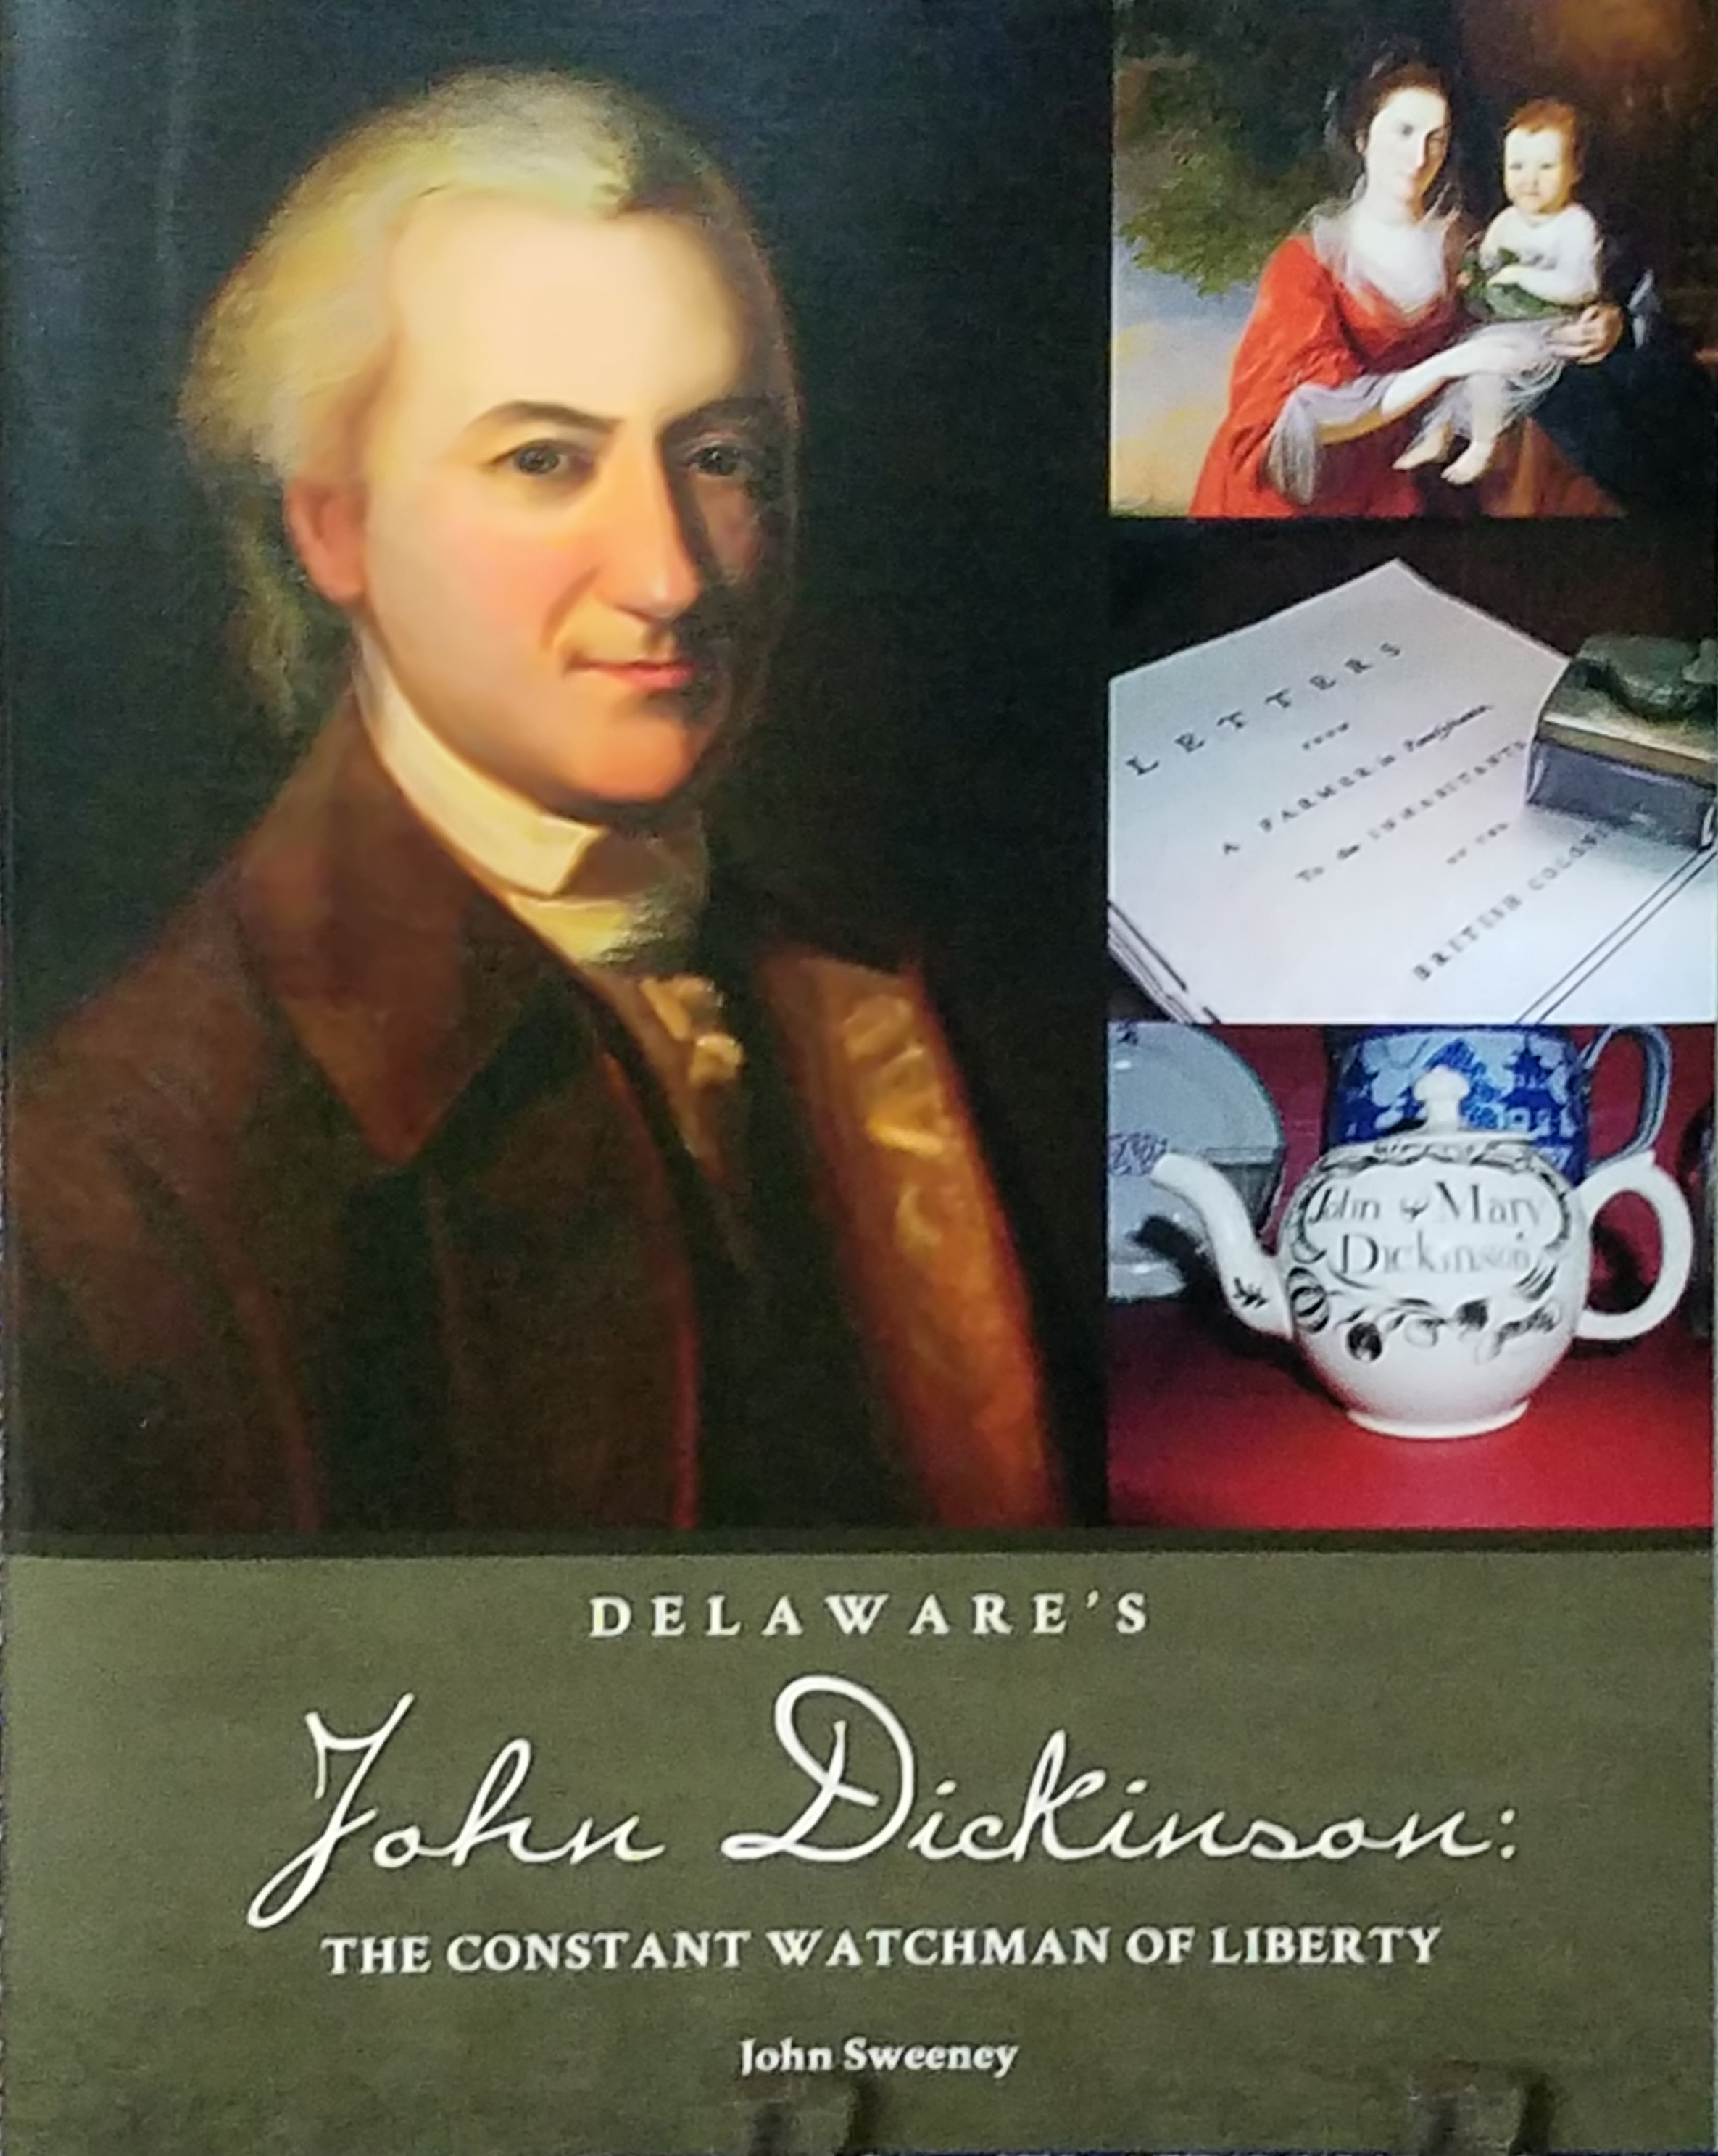 Delaware's John Dickinson: The Constant Watchman of Liberty, by John Sweeney, 2018, 186 pp., HARDCOVER. Prices reflect the cost of the book PLUS S&H fee of $5.00.